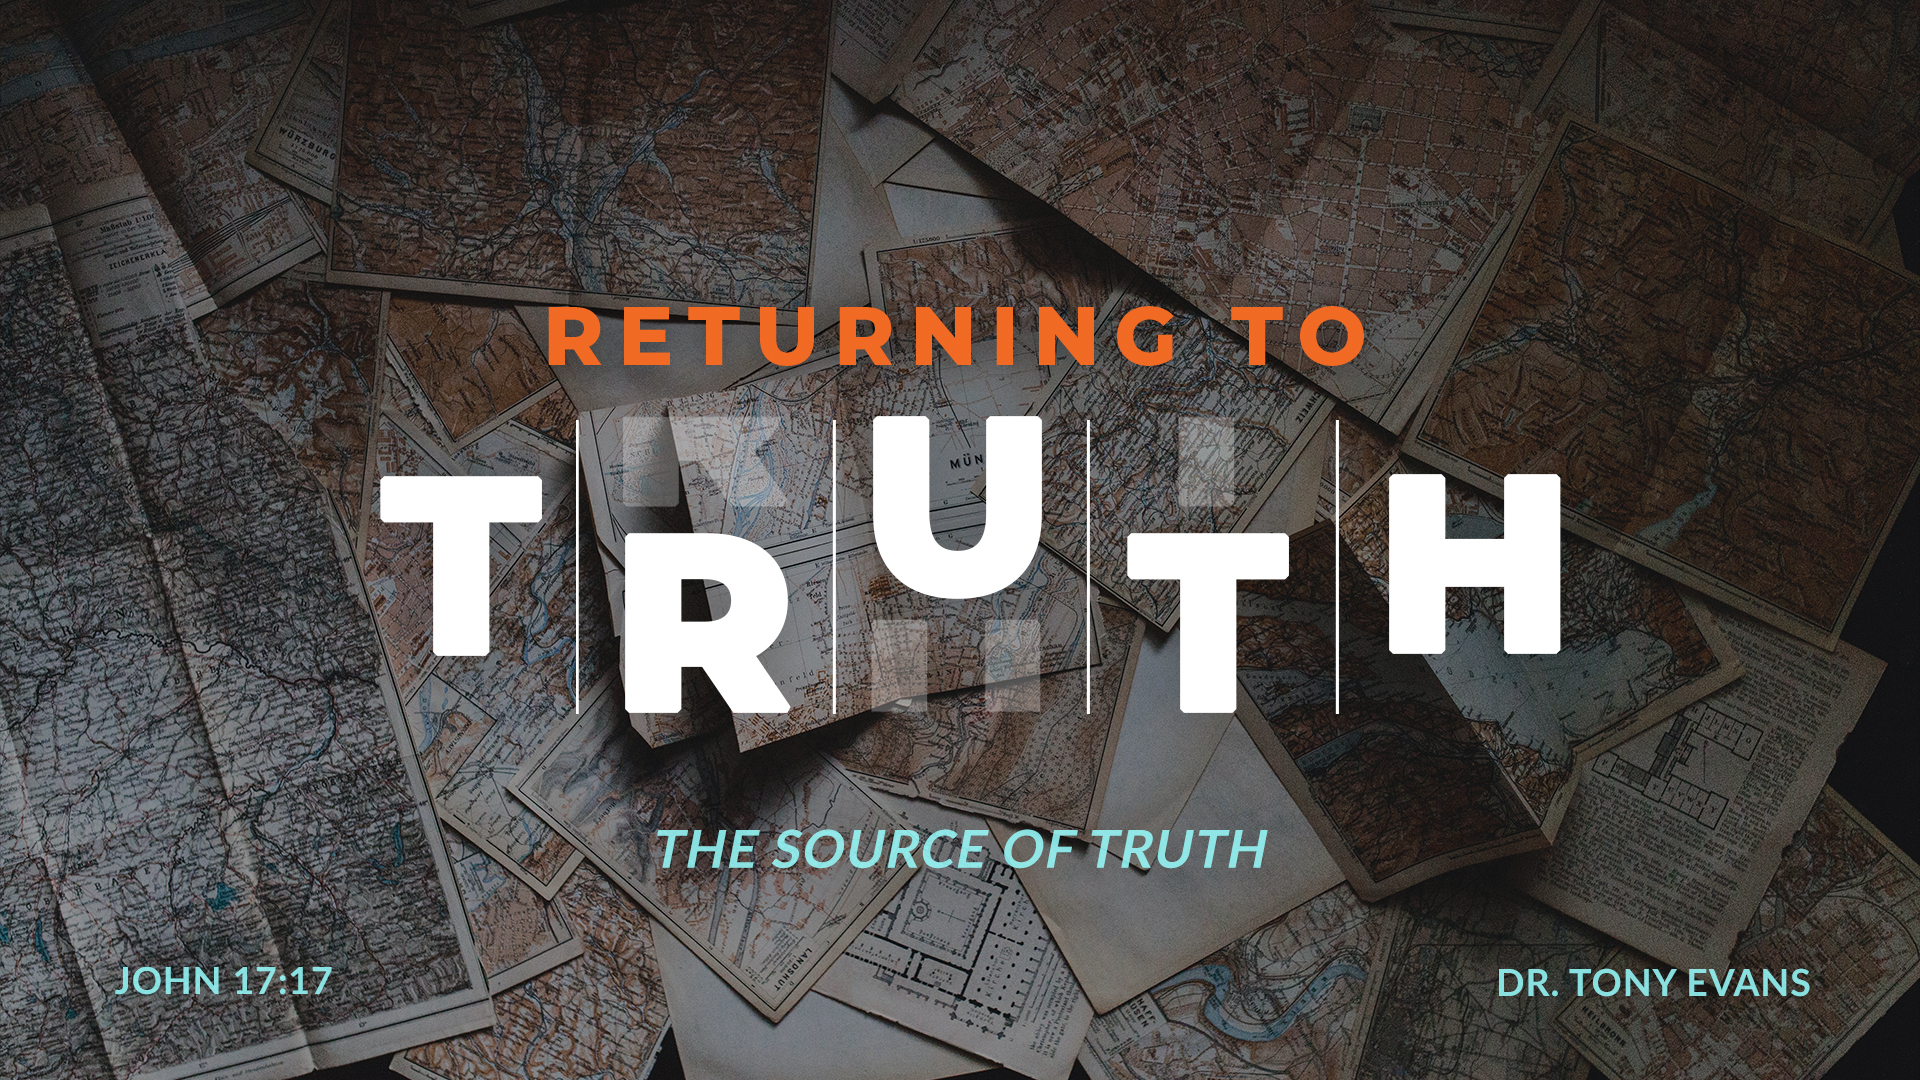 Returning to Truth: The Source of Truth by Dr. Tony Evans